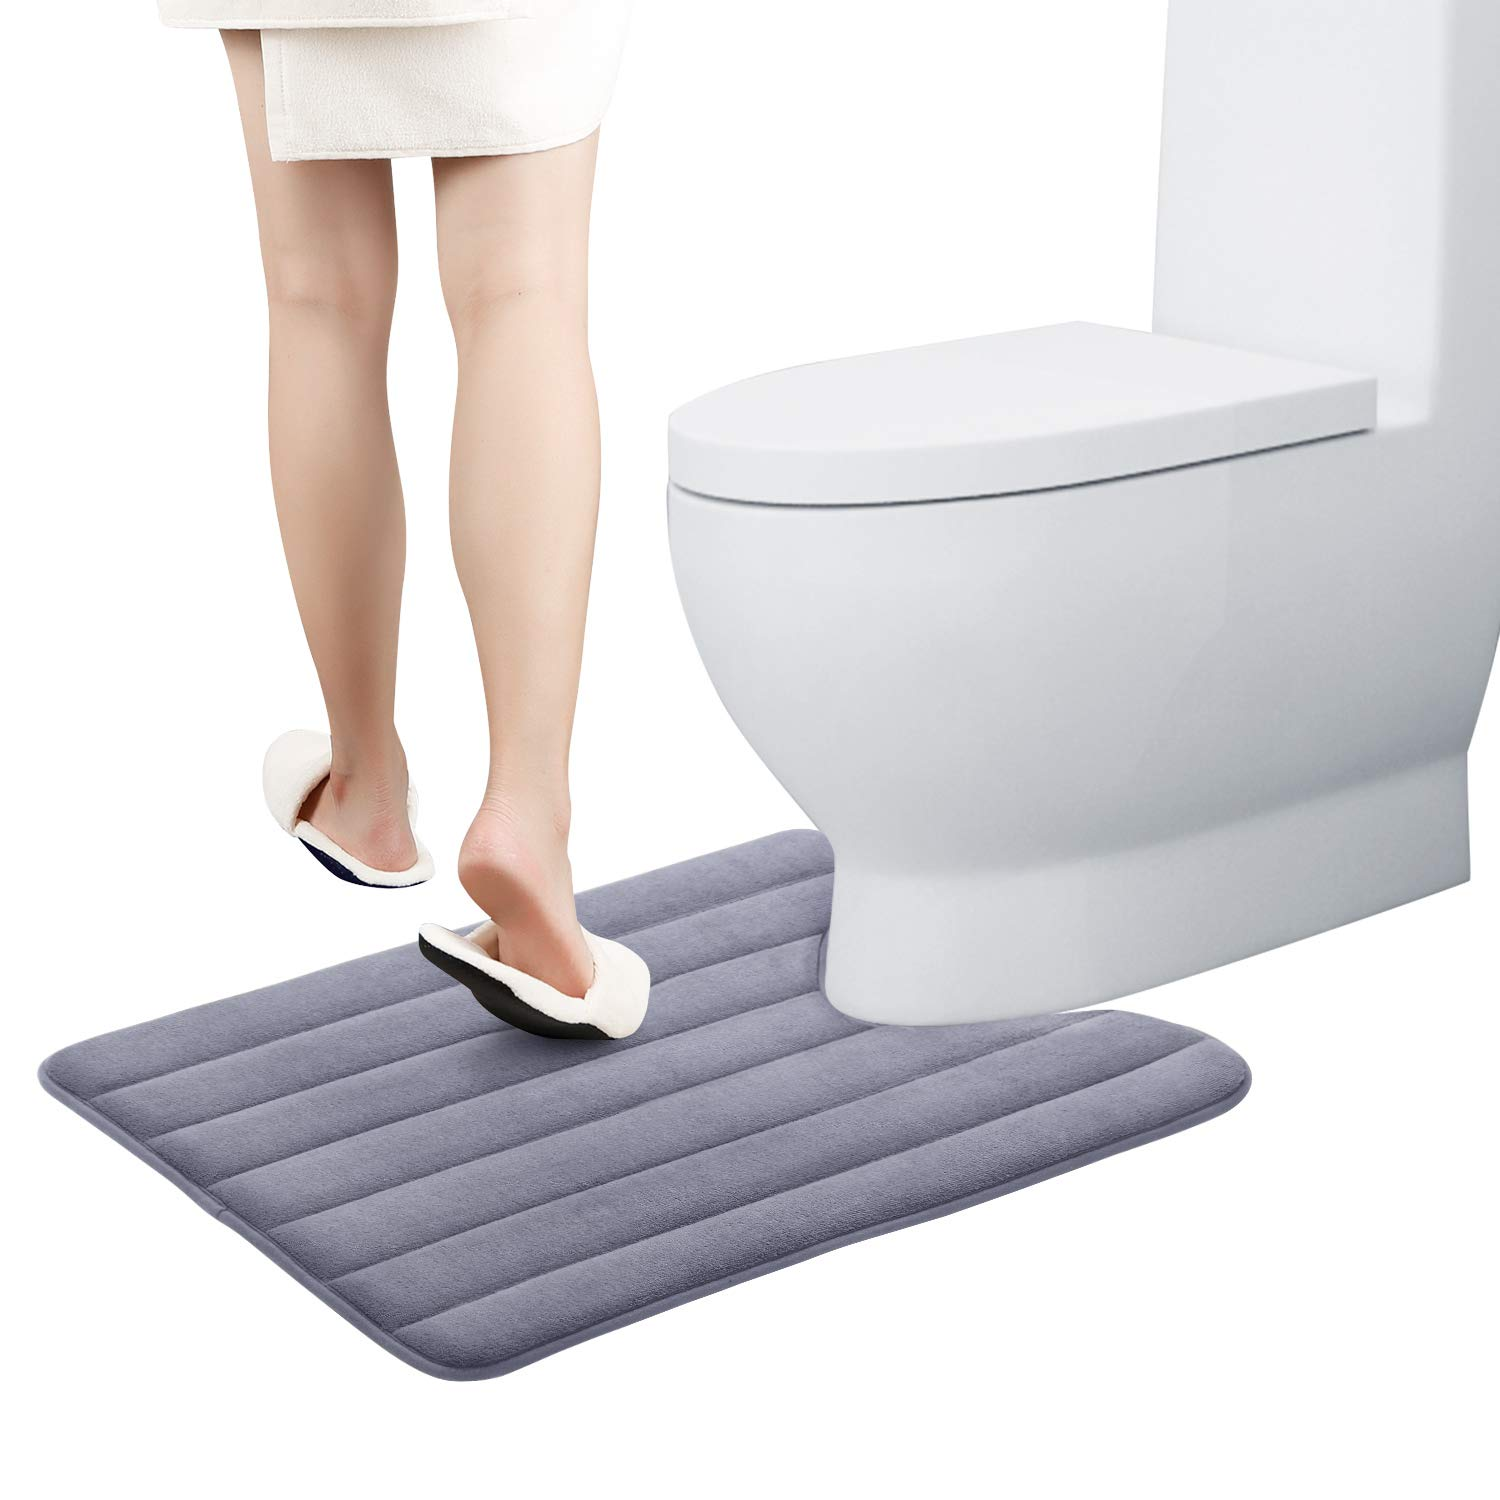 """KMAT Toilet Bath Mat U Shaped Memory Foam Bath Rug Toilet Mat for Bathroom Quick Absorbent and Non-Slip, Machine Washable, Larger Size 20""""x24"""" fit Most Toilets Commodes Contours (Grey)"""